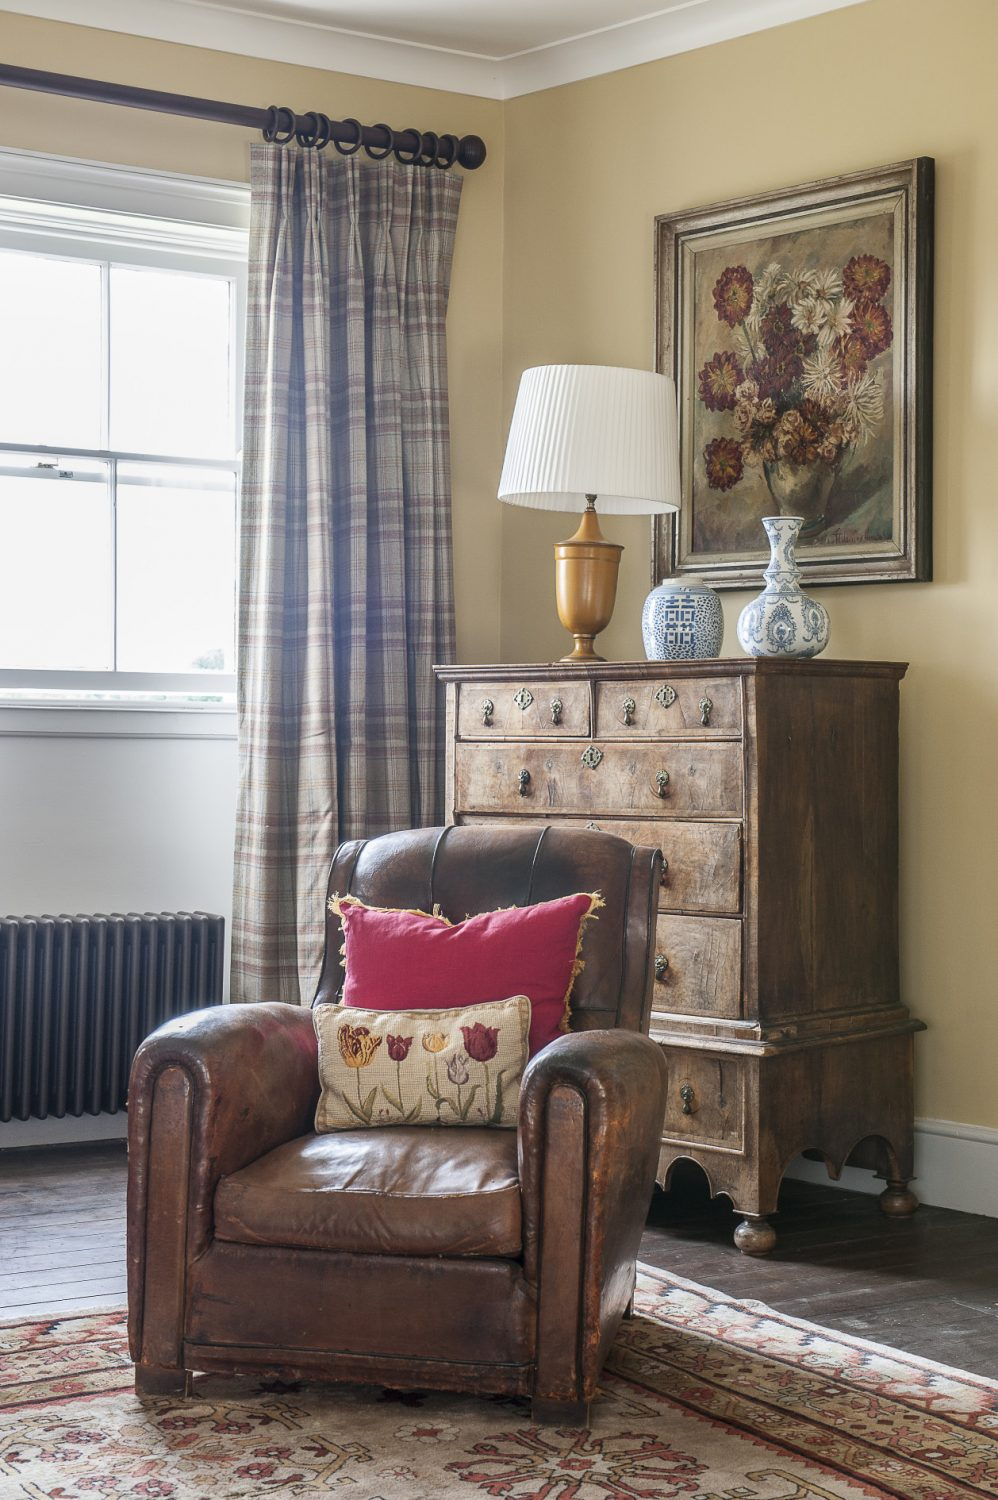 The leather club chair and the dahlia painting in Francis's bedroom were both found at Ardingly. The chest of drawers is a family piece. The plaid curtain fabric is by Colefax and Fowler